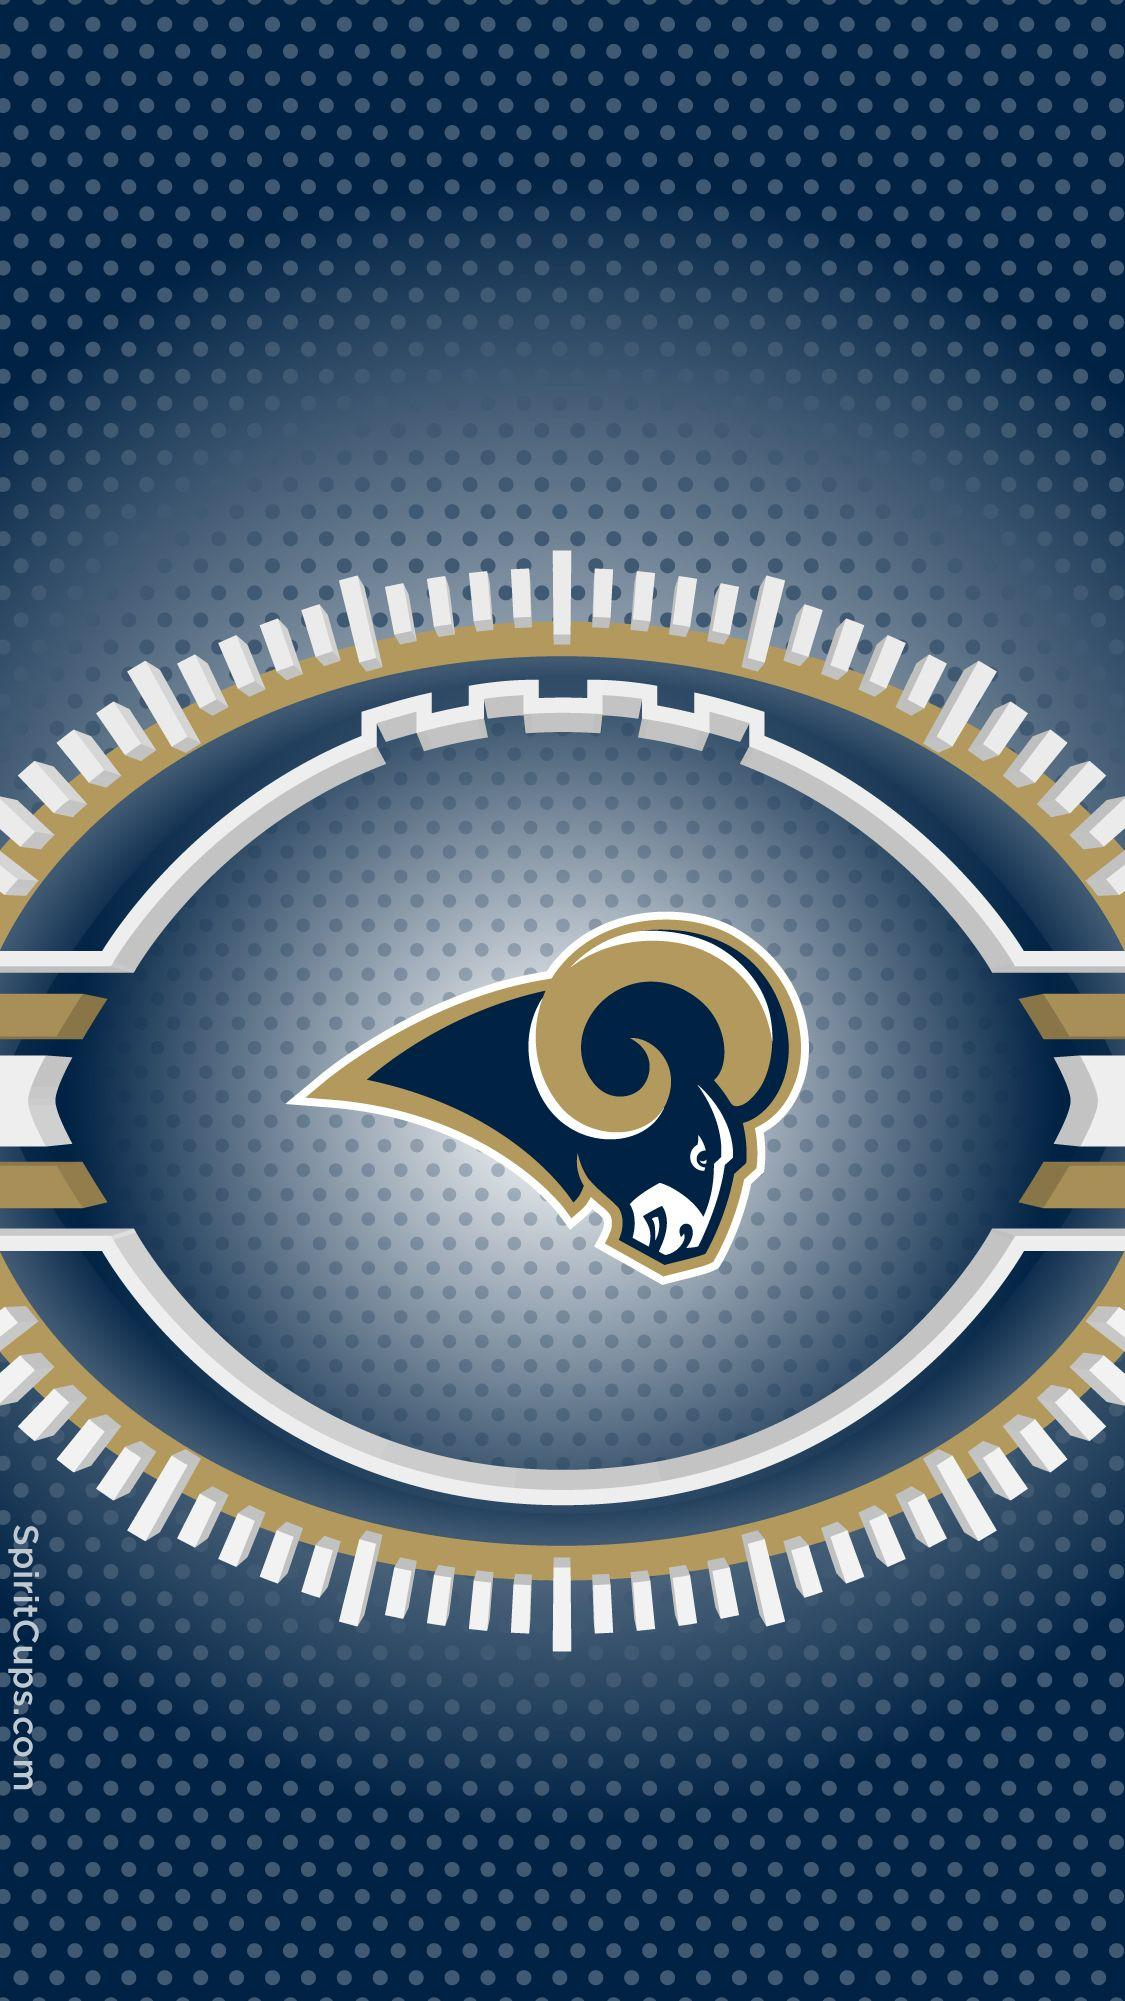 Los-Angeles-Rams-Phone-Screen.jpg